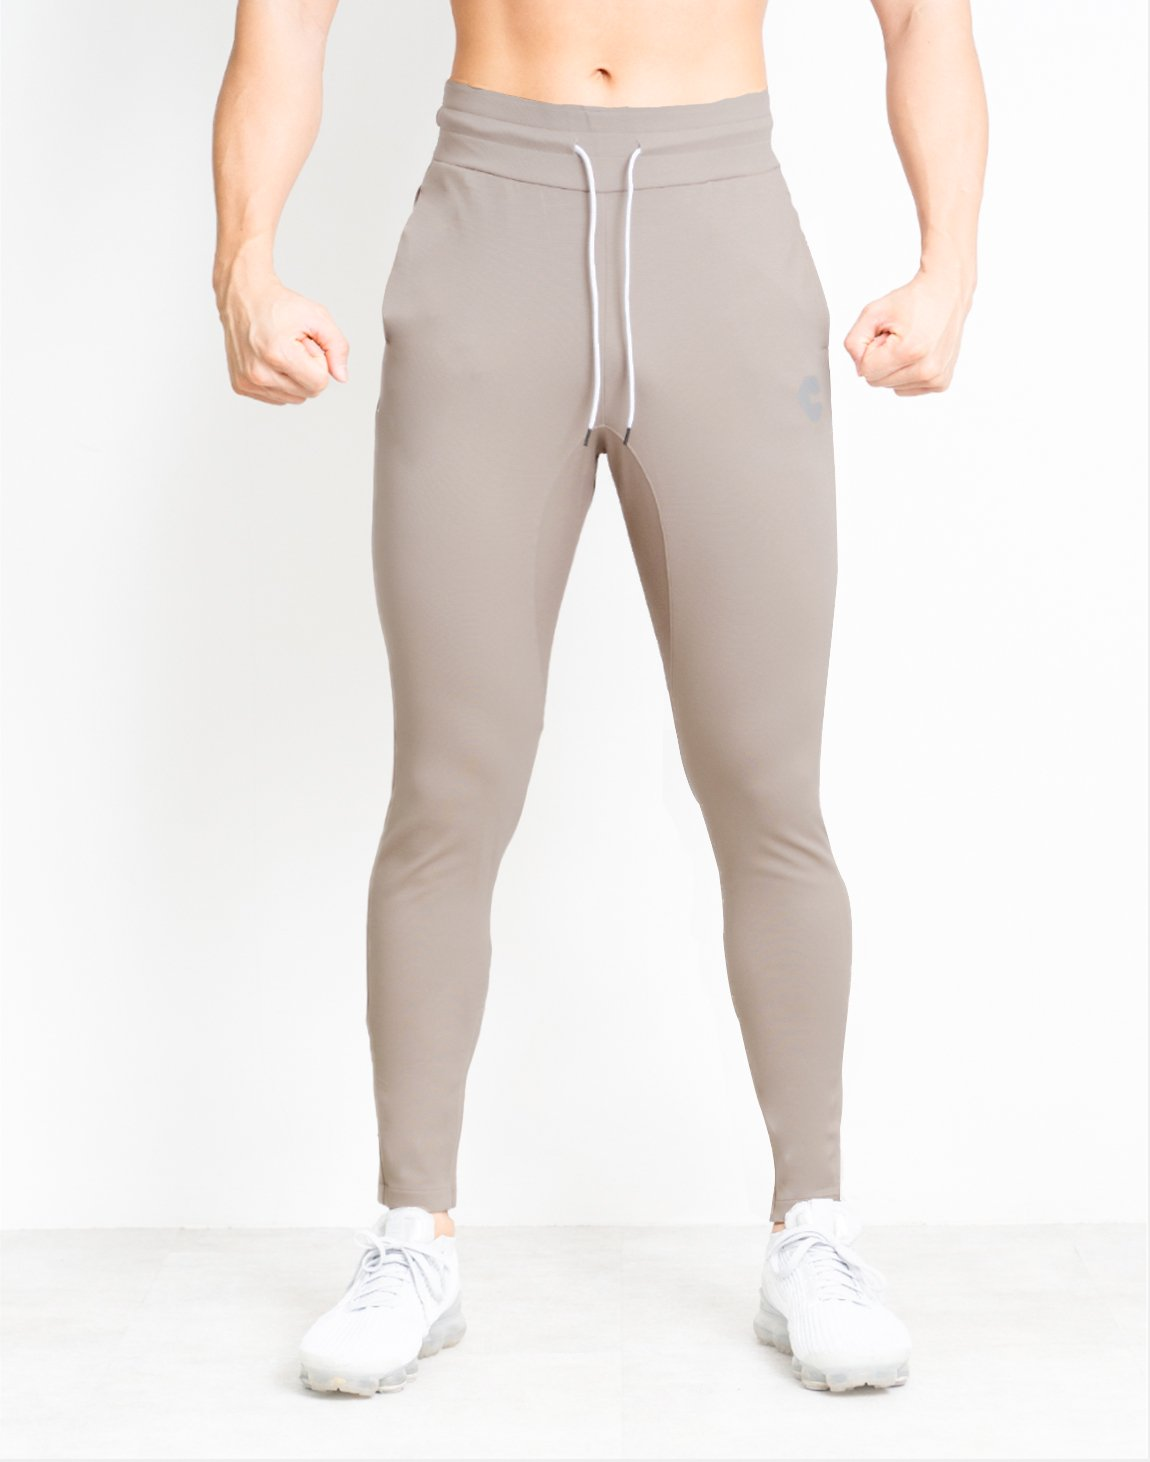 <img class='new_mark_img1' src='https://img.shop-pro.jp/img/new/icons1.gif' style='border:none;display:inline;margin:0px;padding:0px;width:auto;' />CRONOS SIDE CLAF LOGO PANTS【BEIGE】